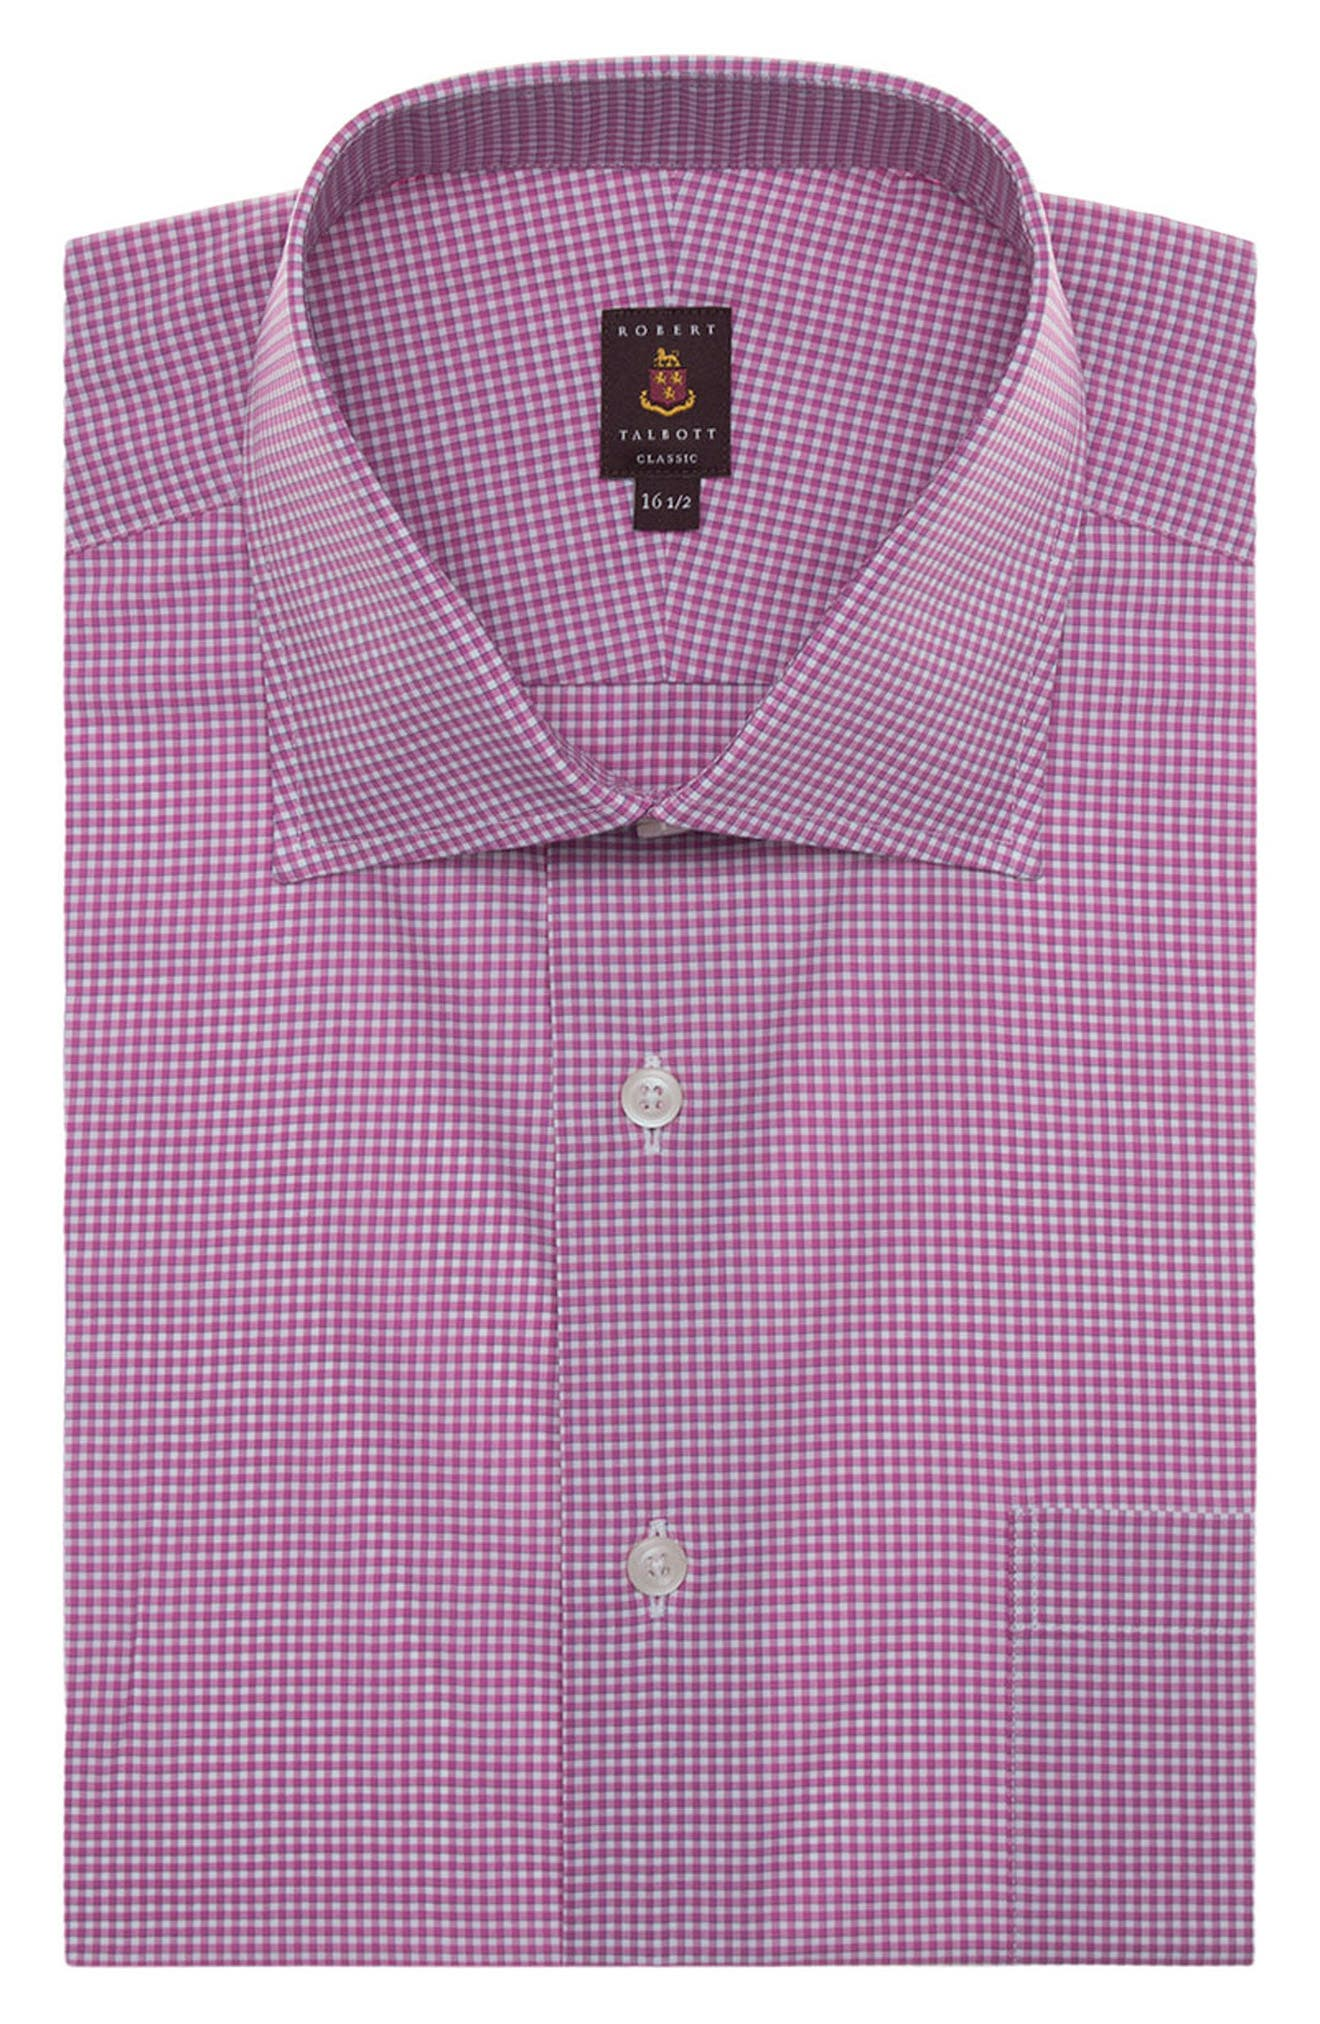 Tailored Fit Check Dress Shirt,                         Main,                         color, 500